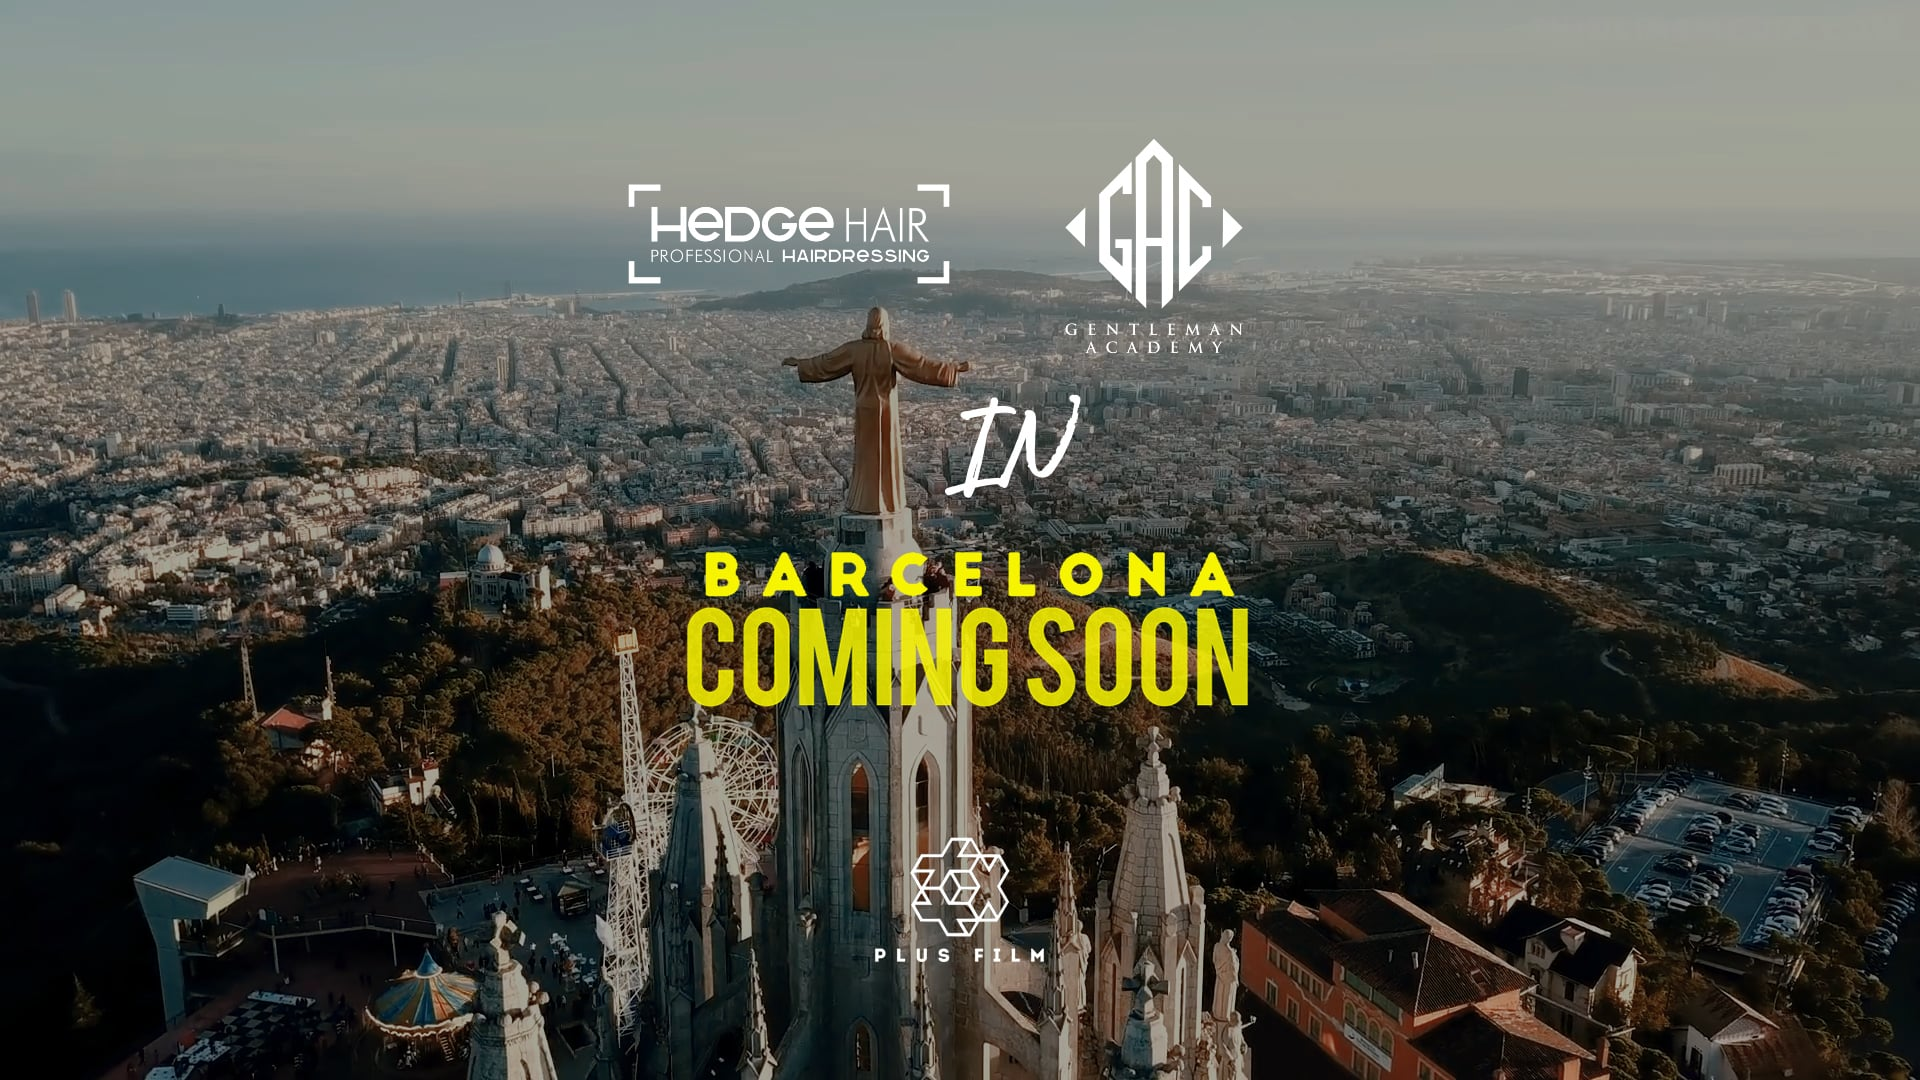 Hedge Hair in Barcelona - Trailer by Plus Film